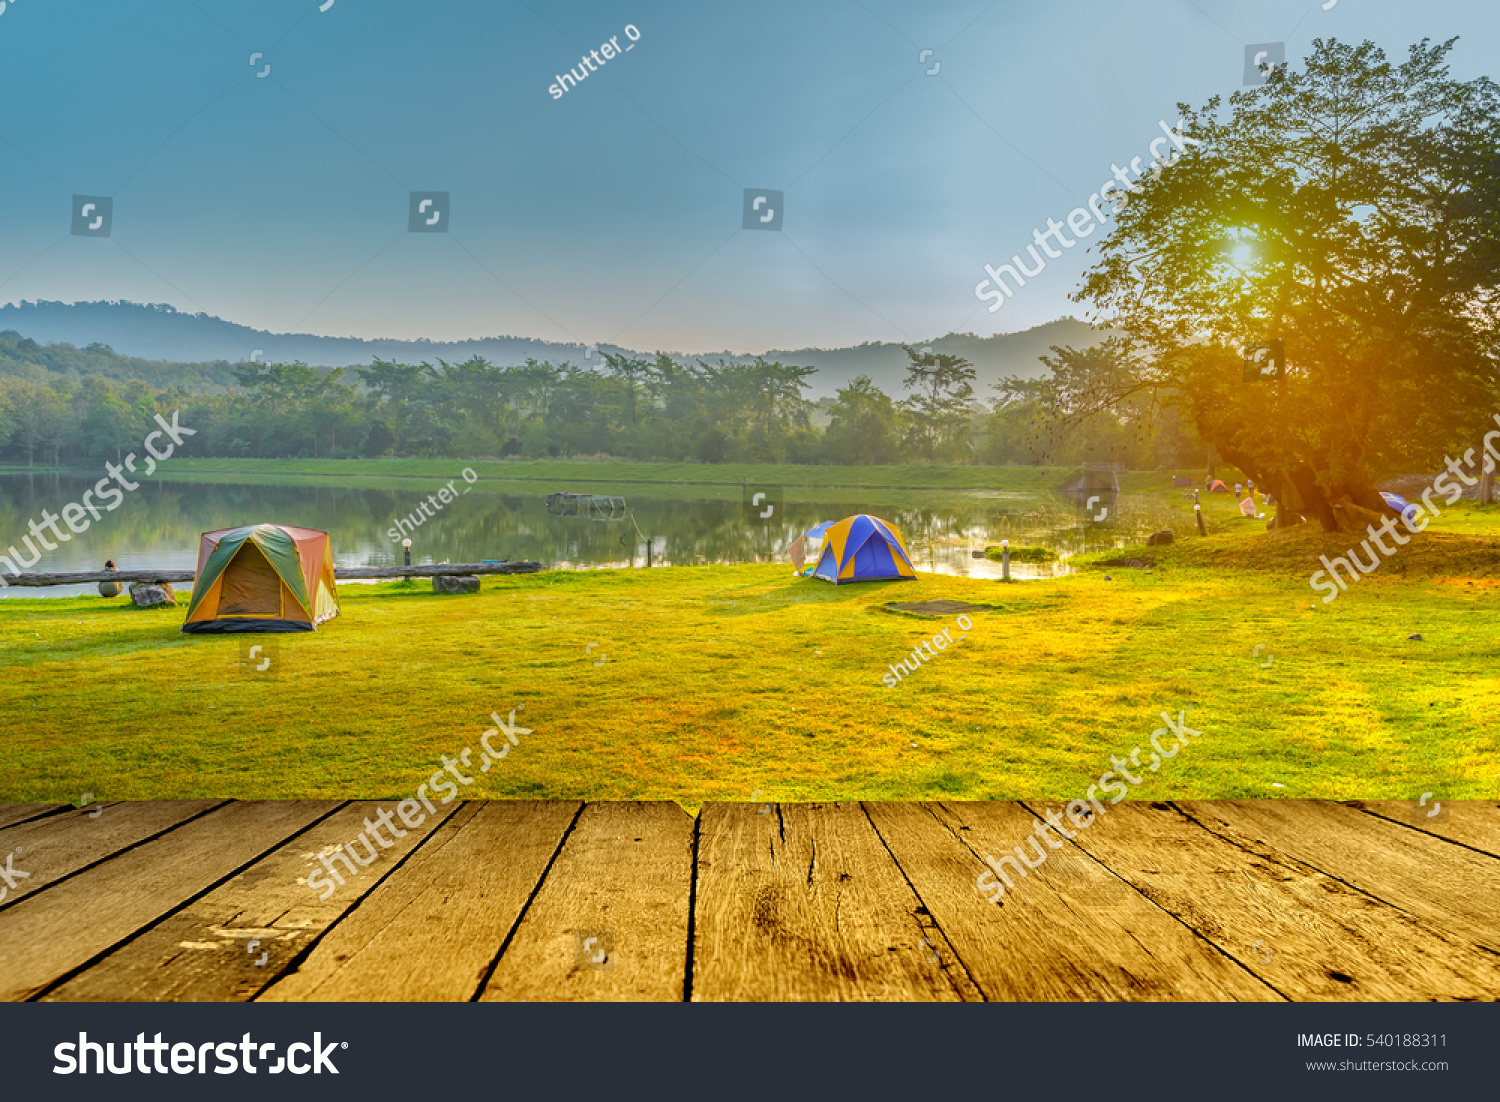 Camping and tent near lake in sunrise with empty wood floor #540188311